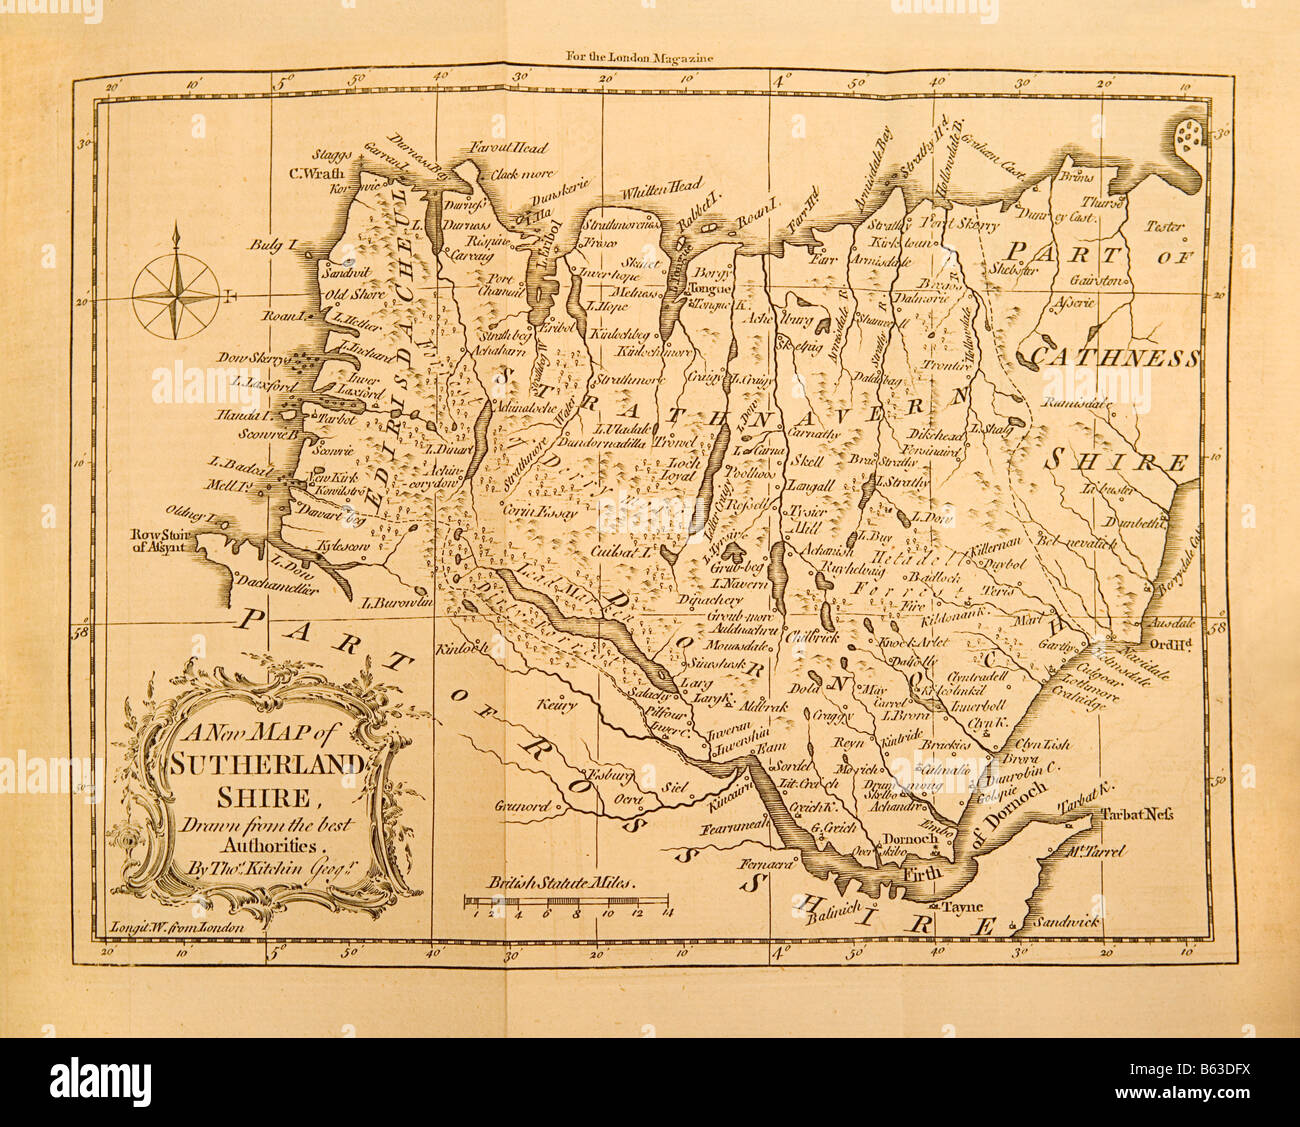 An old map from 1761 of Sutherlandshire county in England Stock